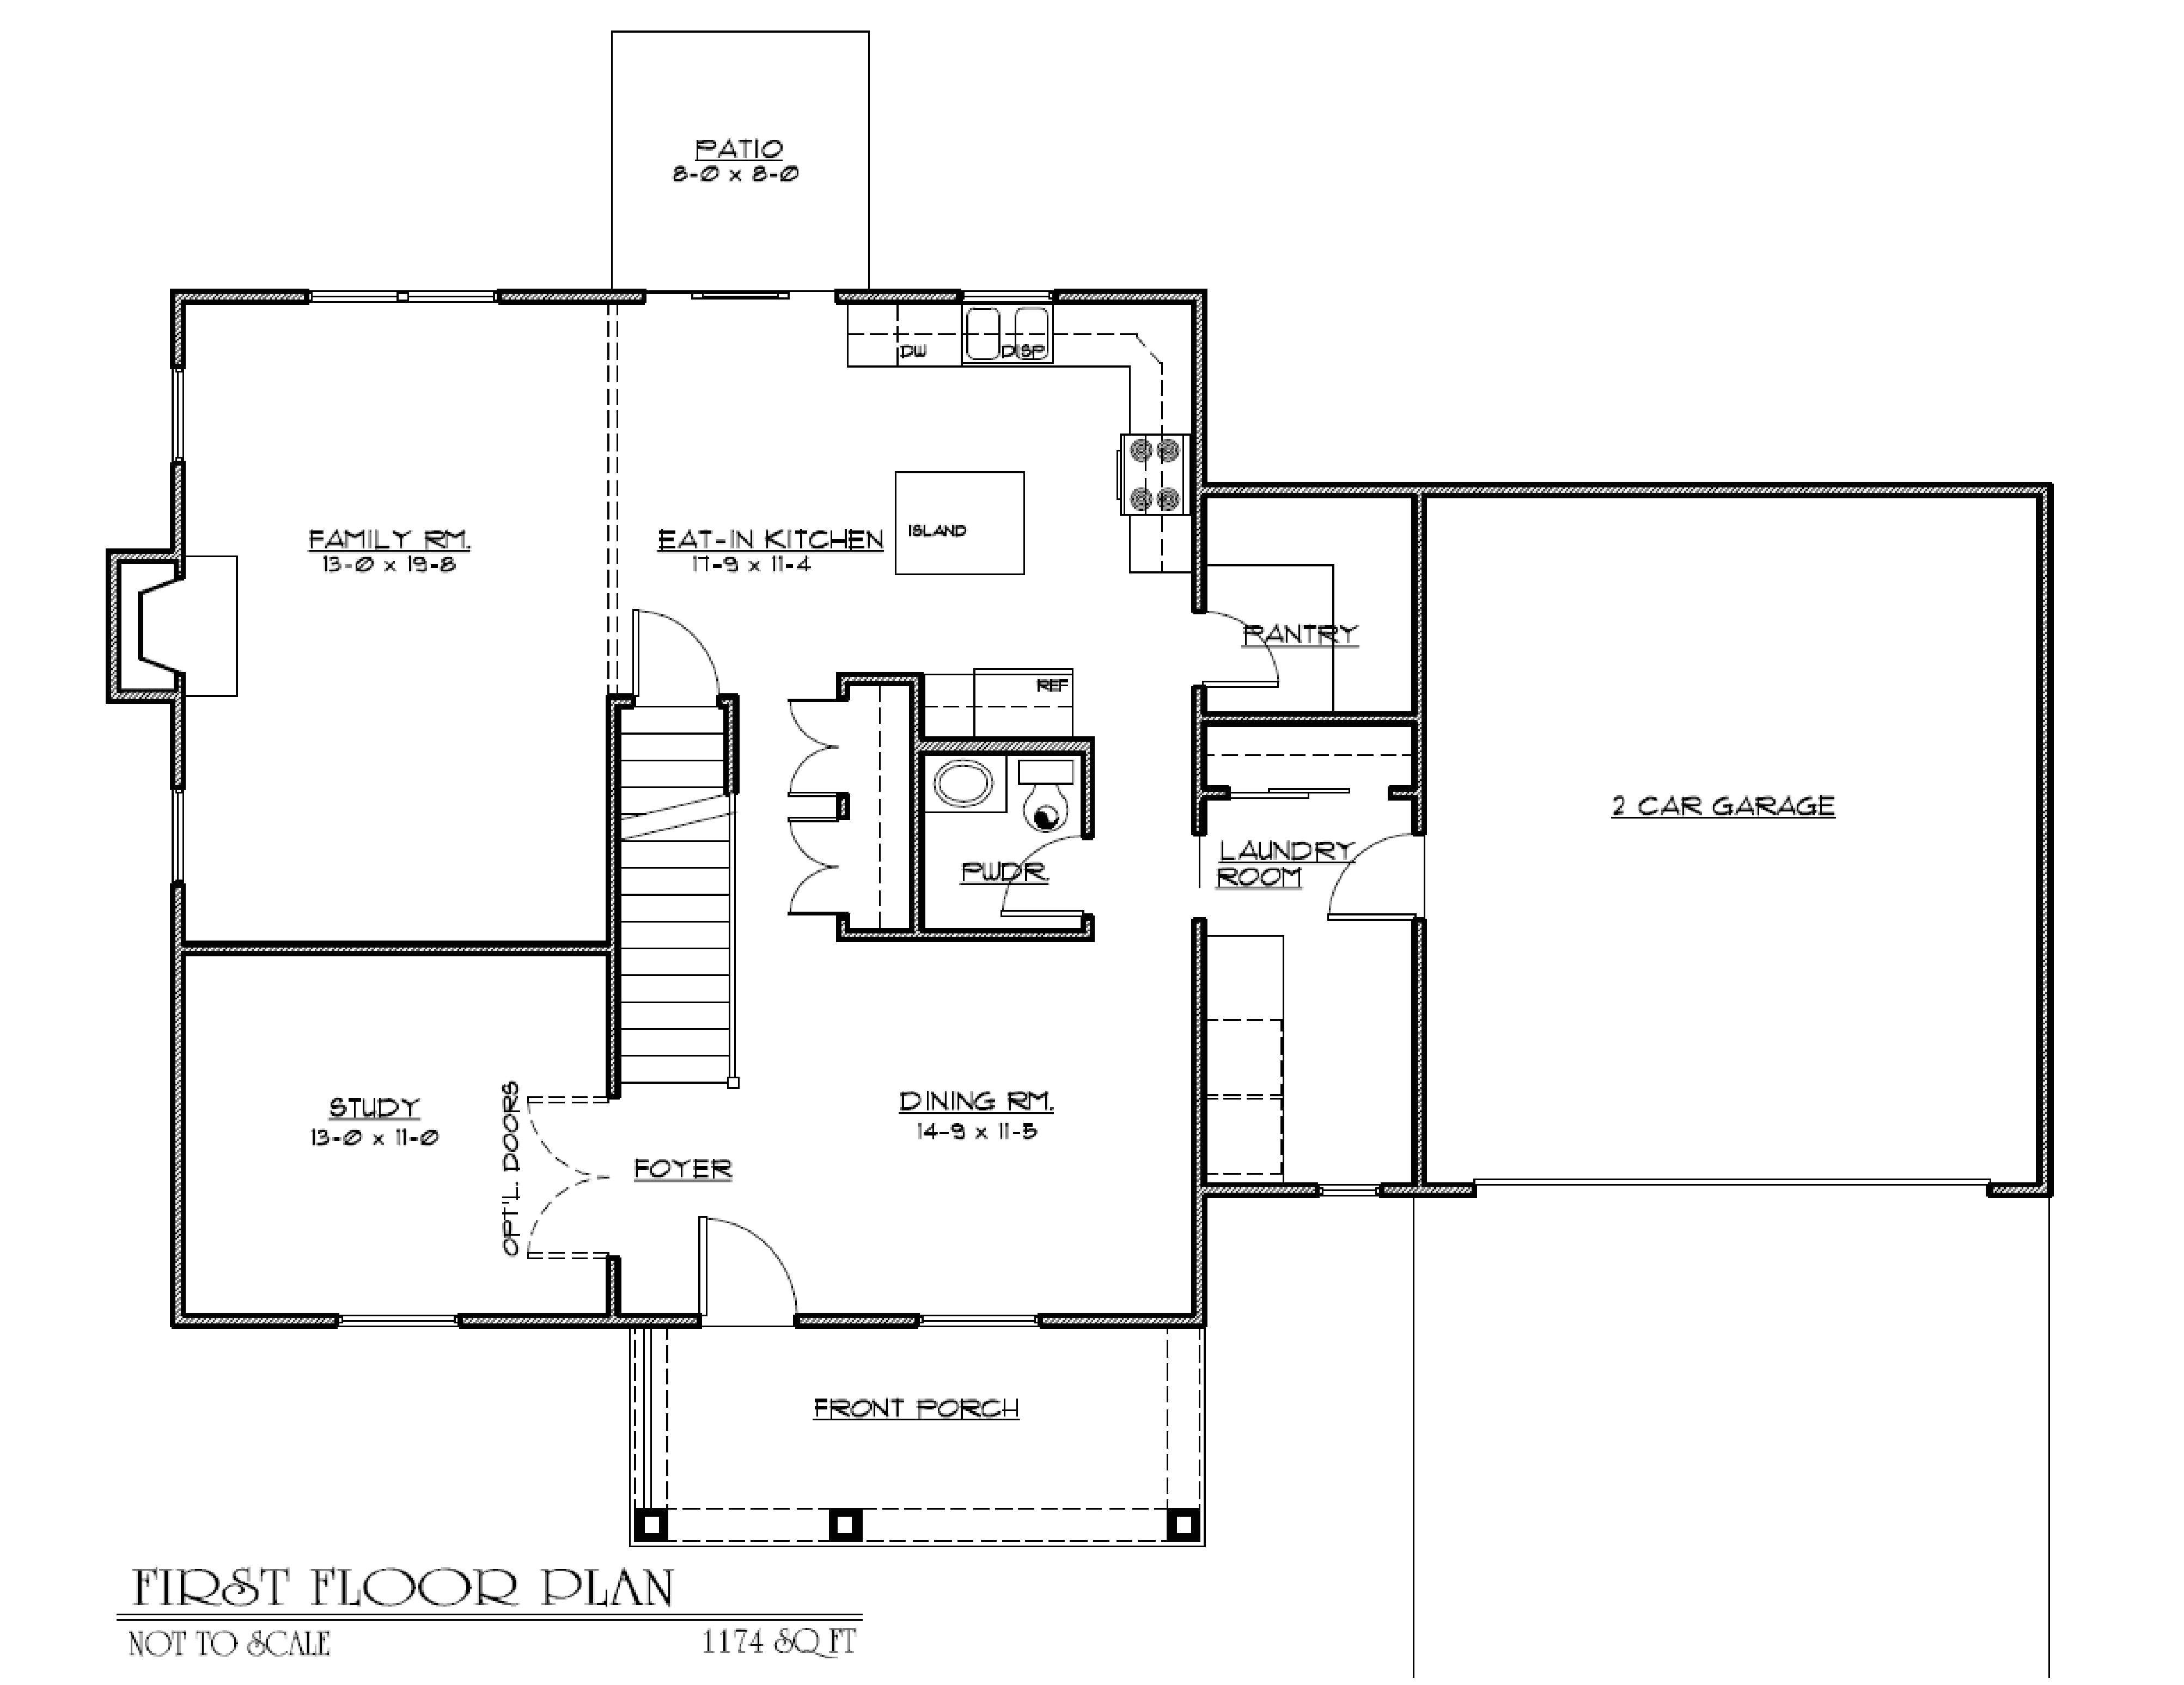 jim walter homes floor plans beautiful how to draw house plans designs beautiful jim walter homes